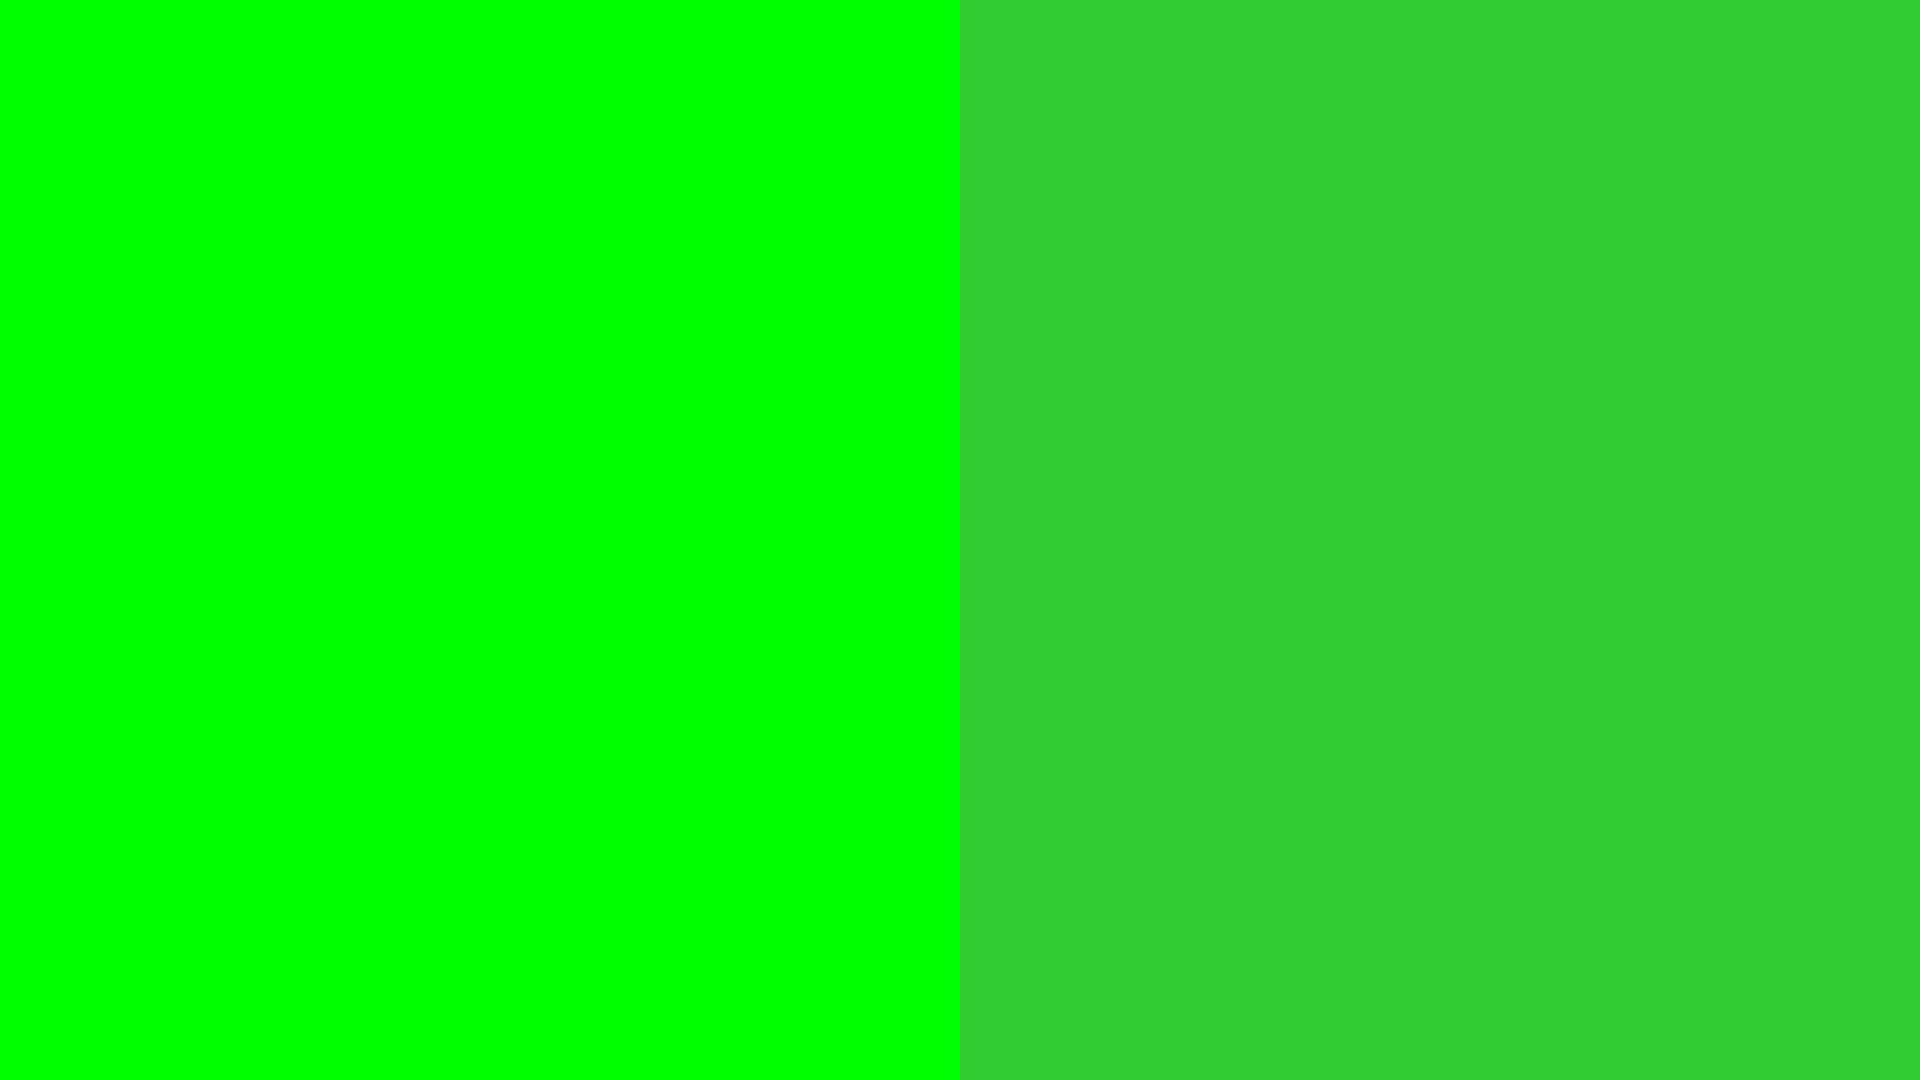 lime color background - photo #46